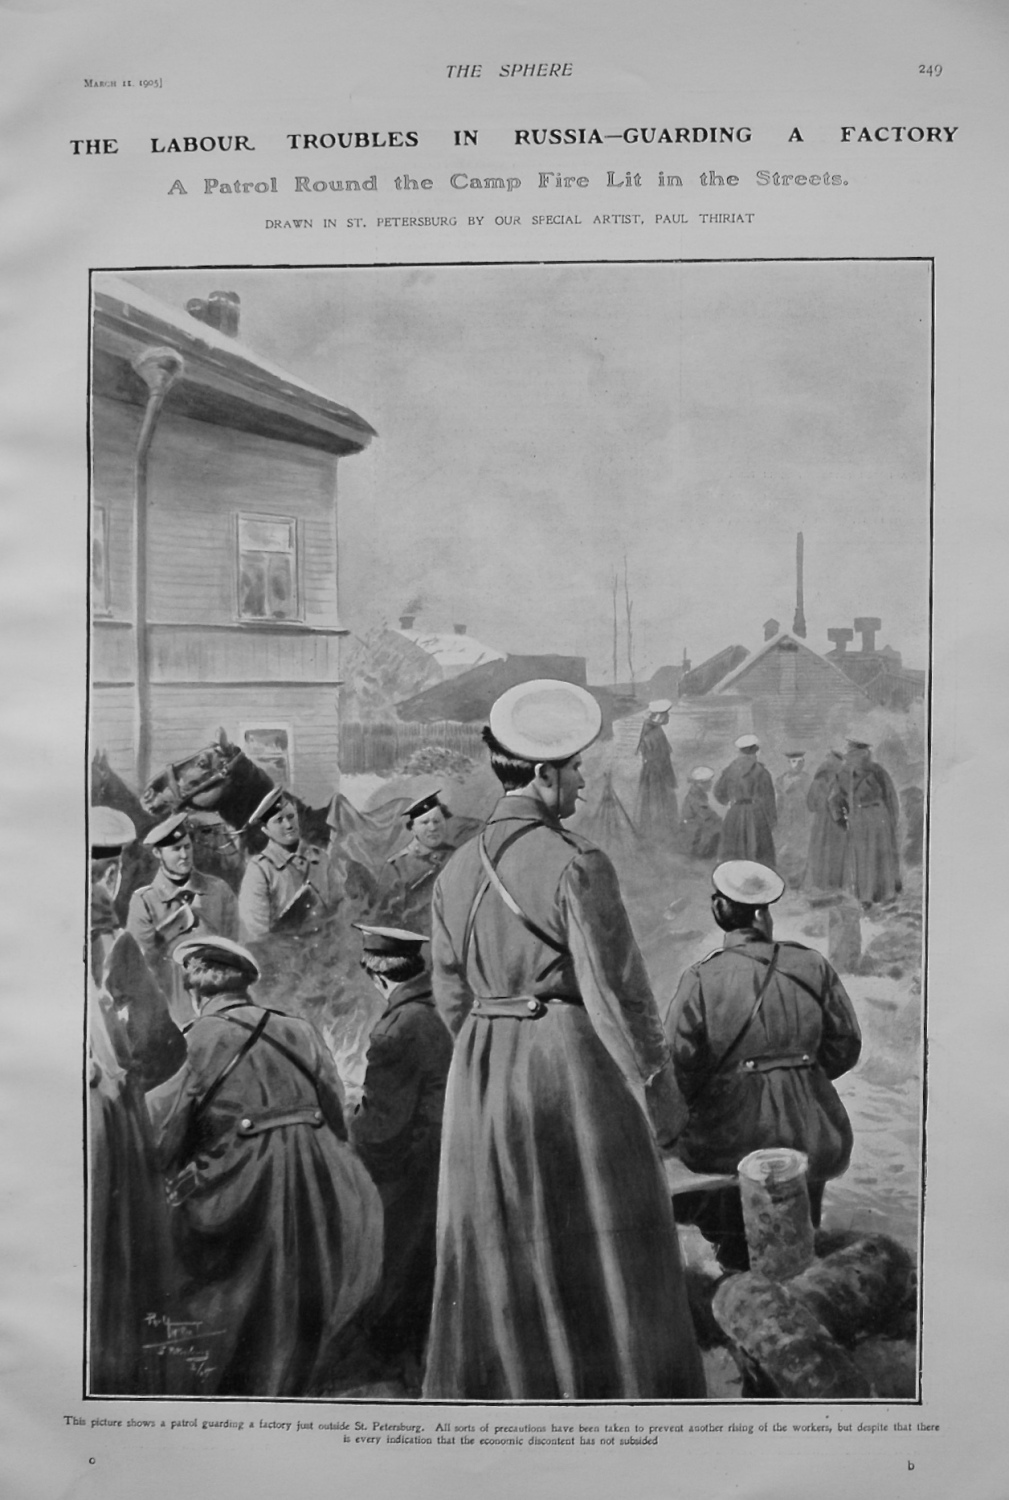 The Labour Troubles in Russia - Guarding a Factory. 1905.